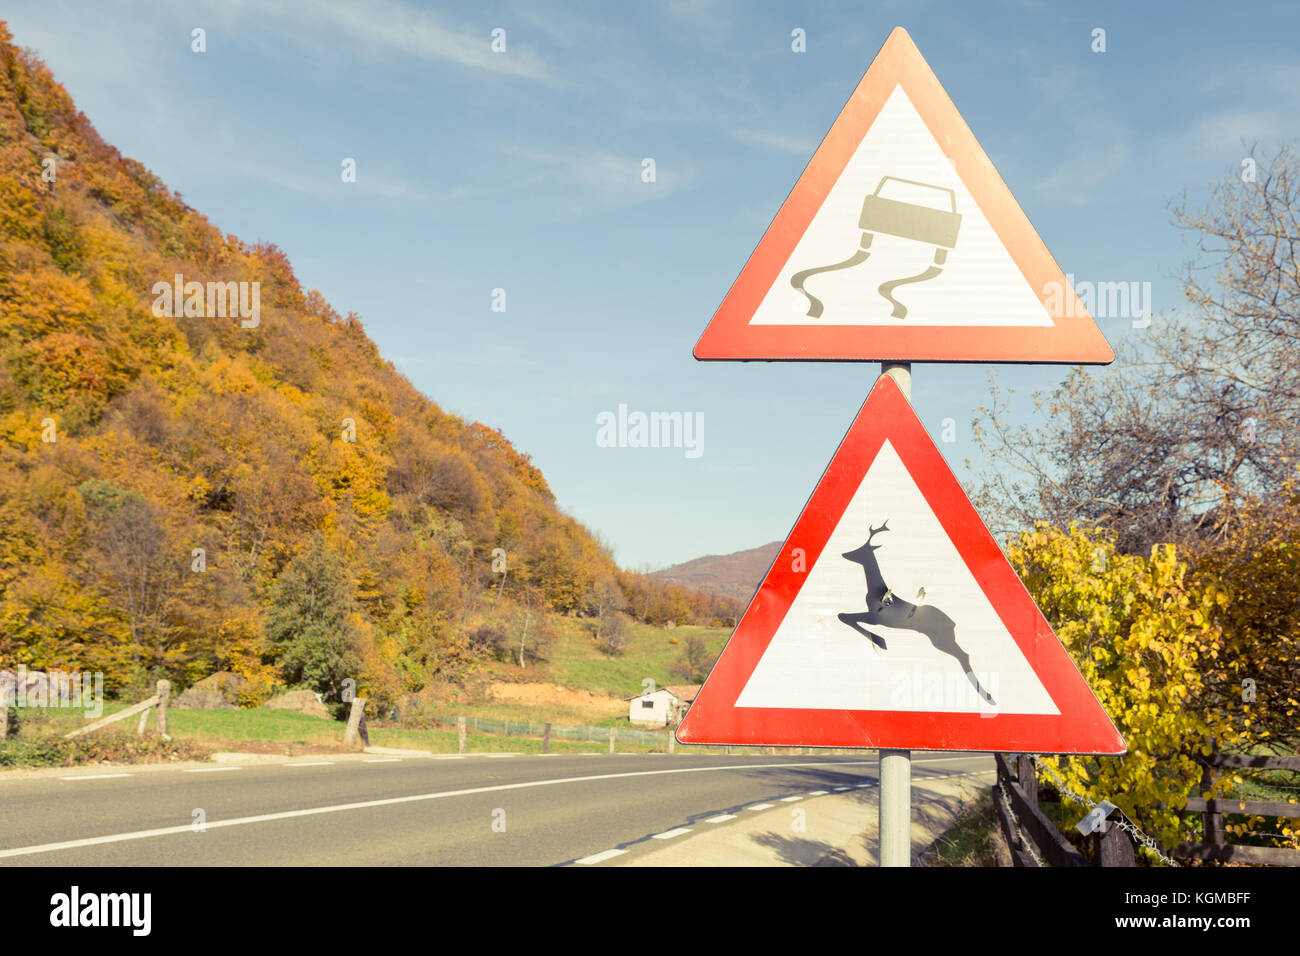 Warning road signs about slippery road and wild animals on sunny autumn or fall season - Stock Image